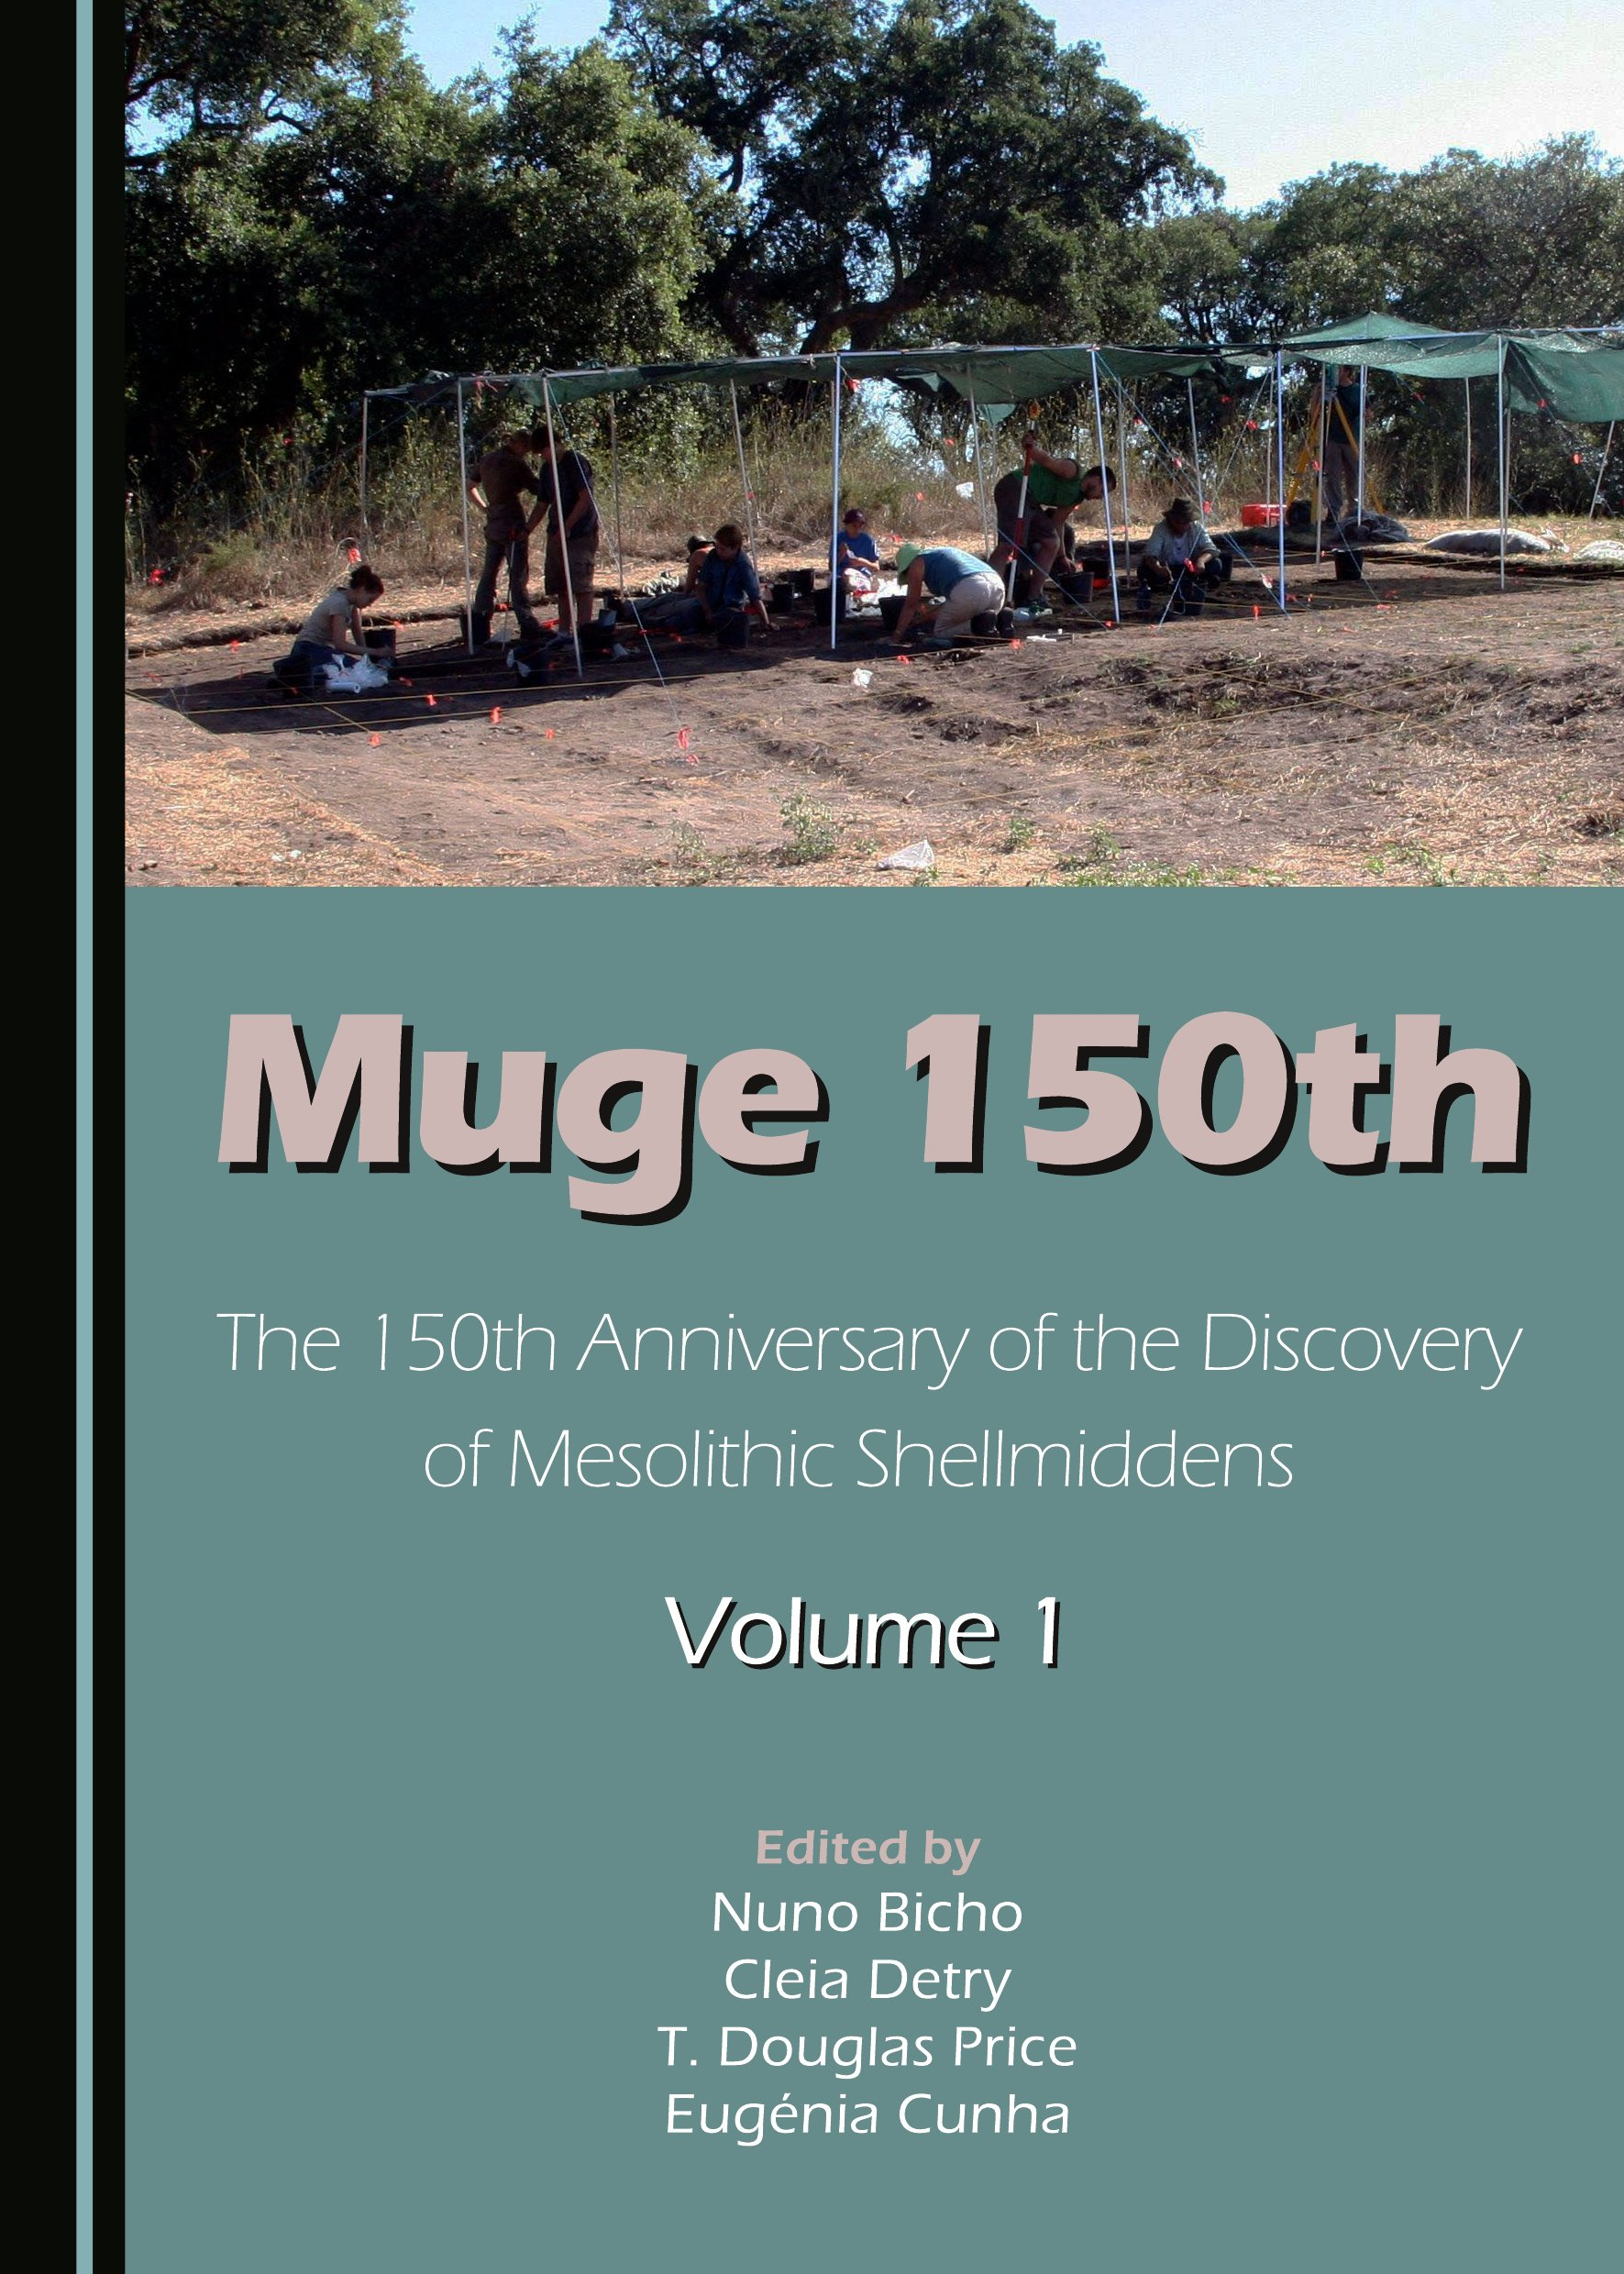 Muge 150th: The 150th Anniversary of the Discovery of Mesolithic Shellmiddens—Volume 1